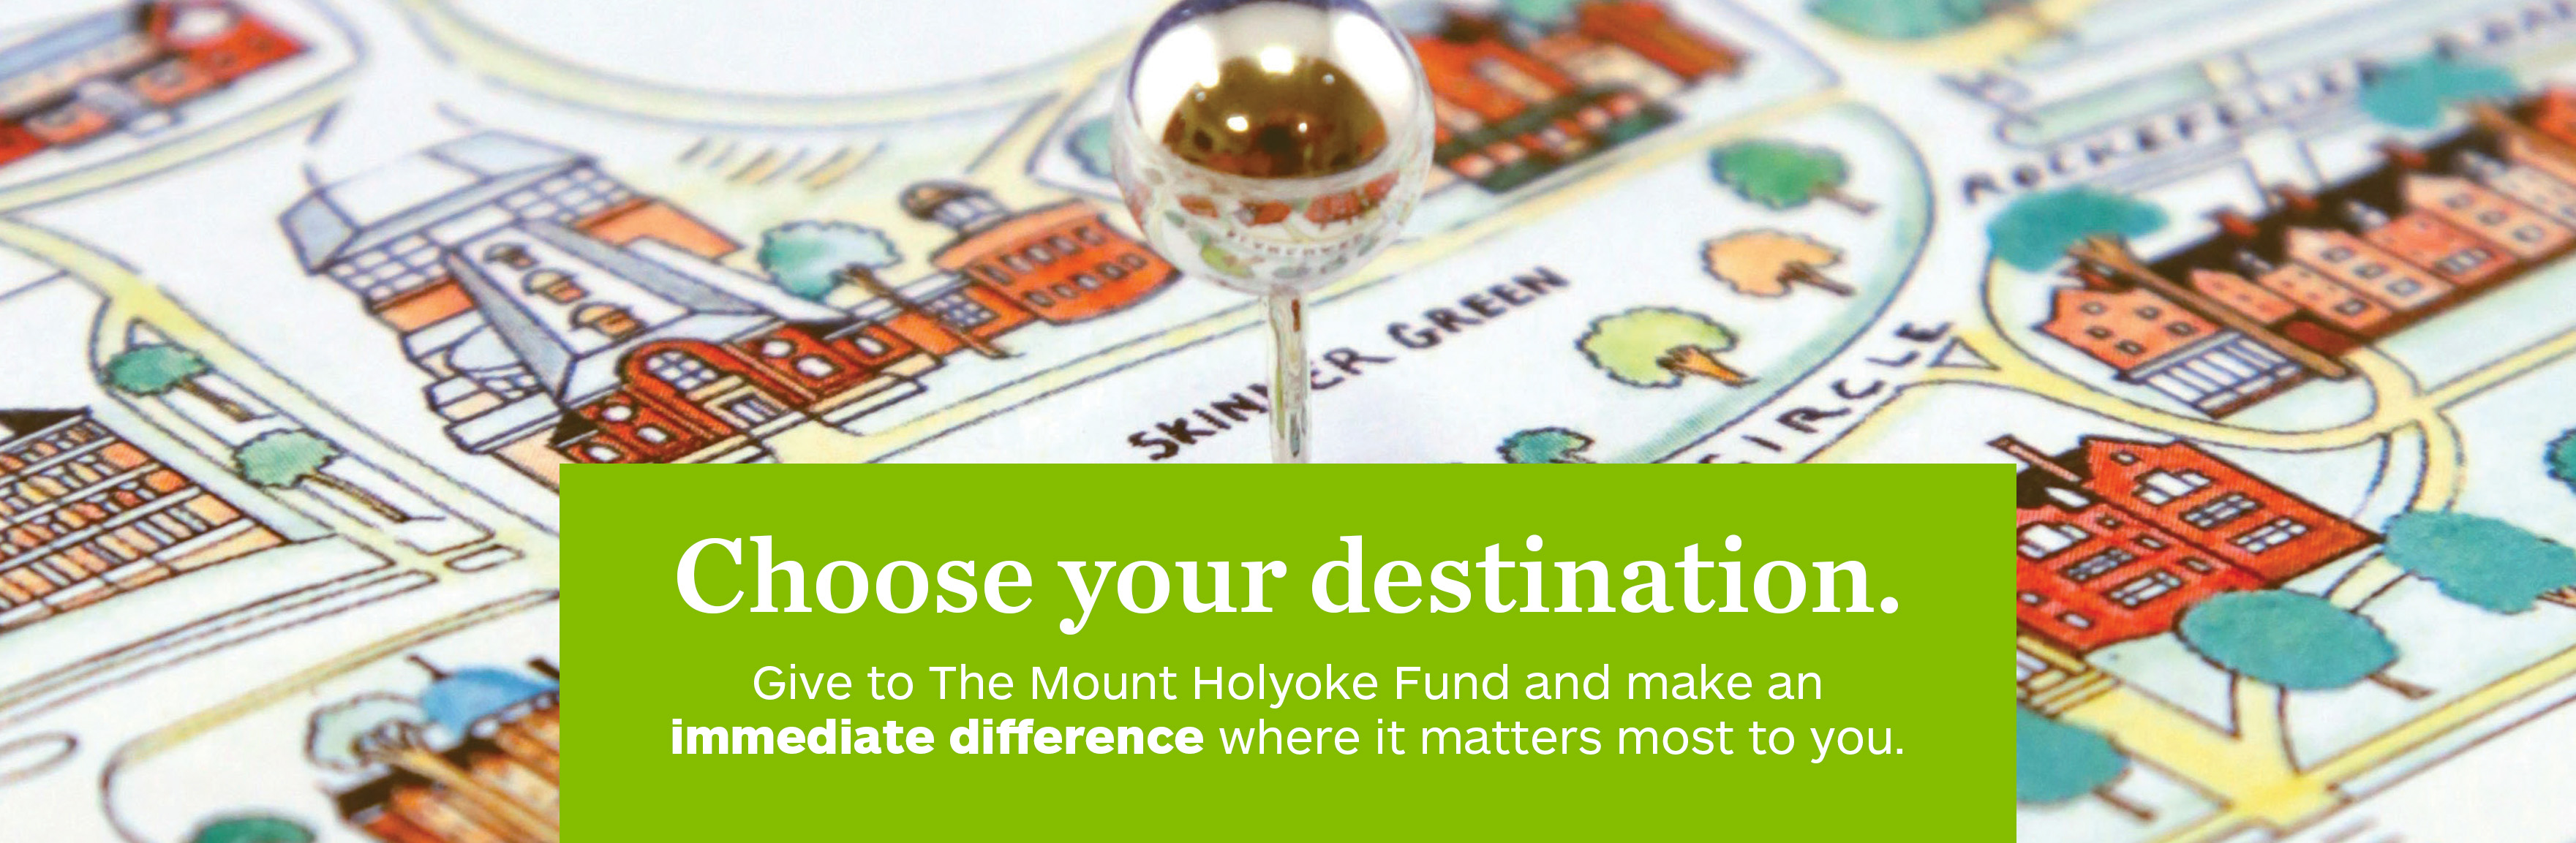 The Mount Holyoke Fund: Choose your destination.